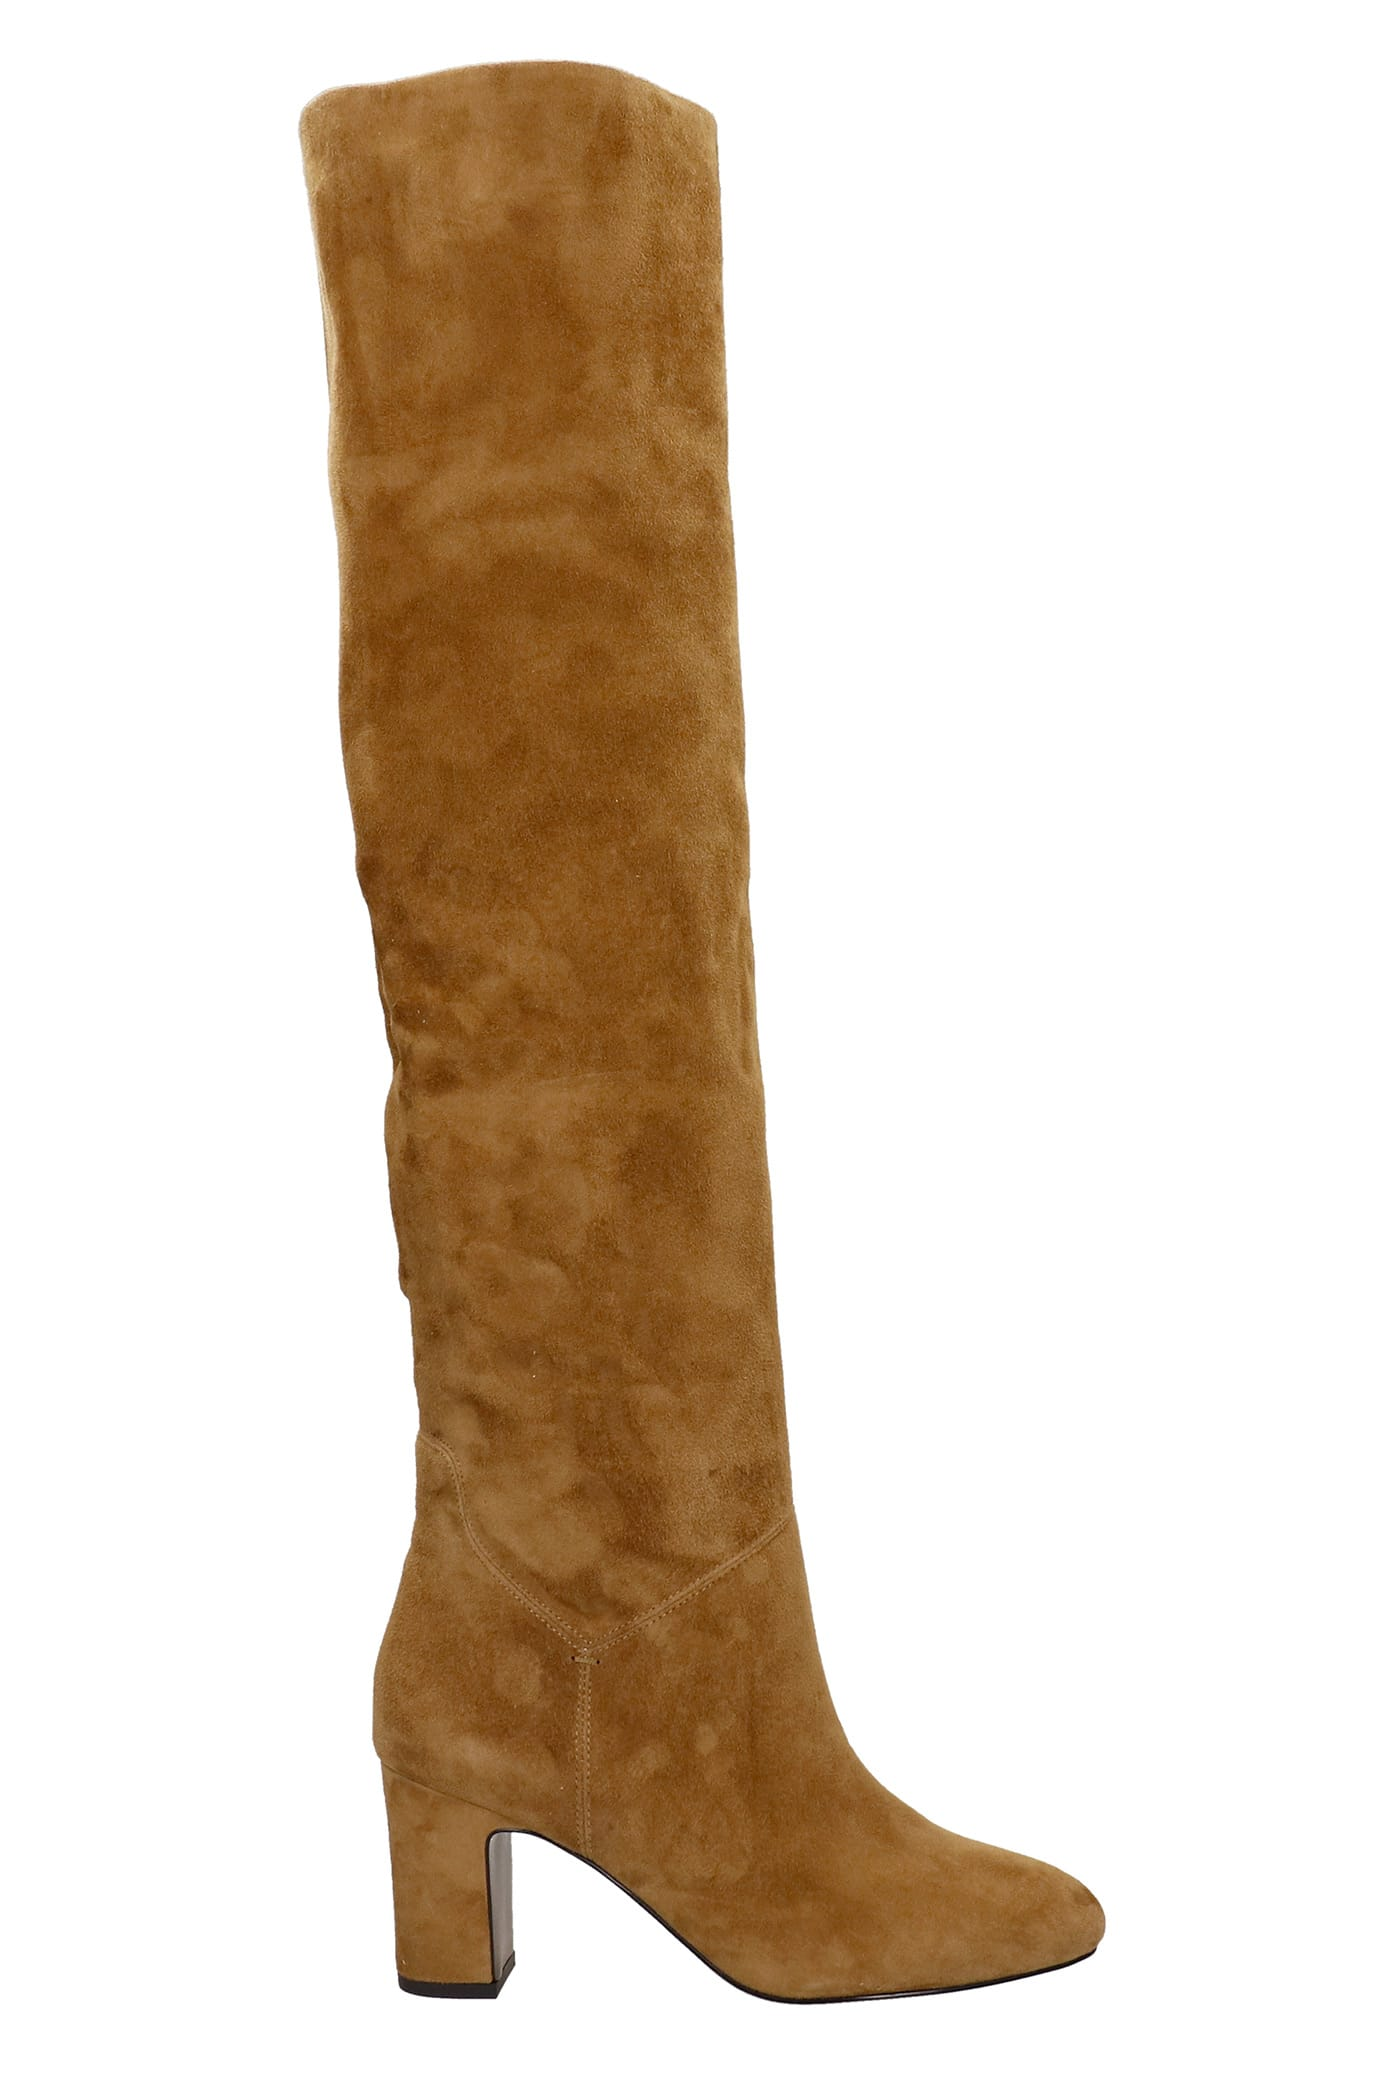 High Heels Boots In Leather Color Suede